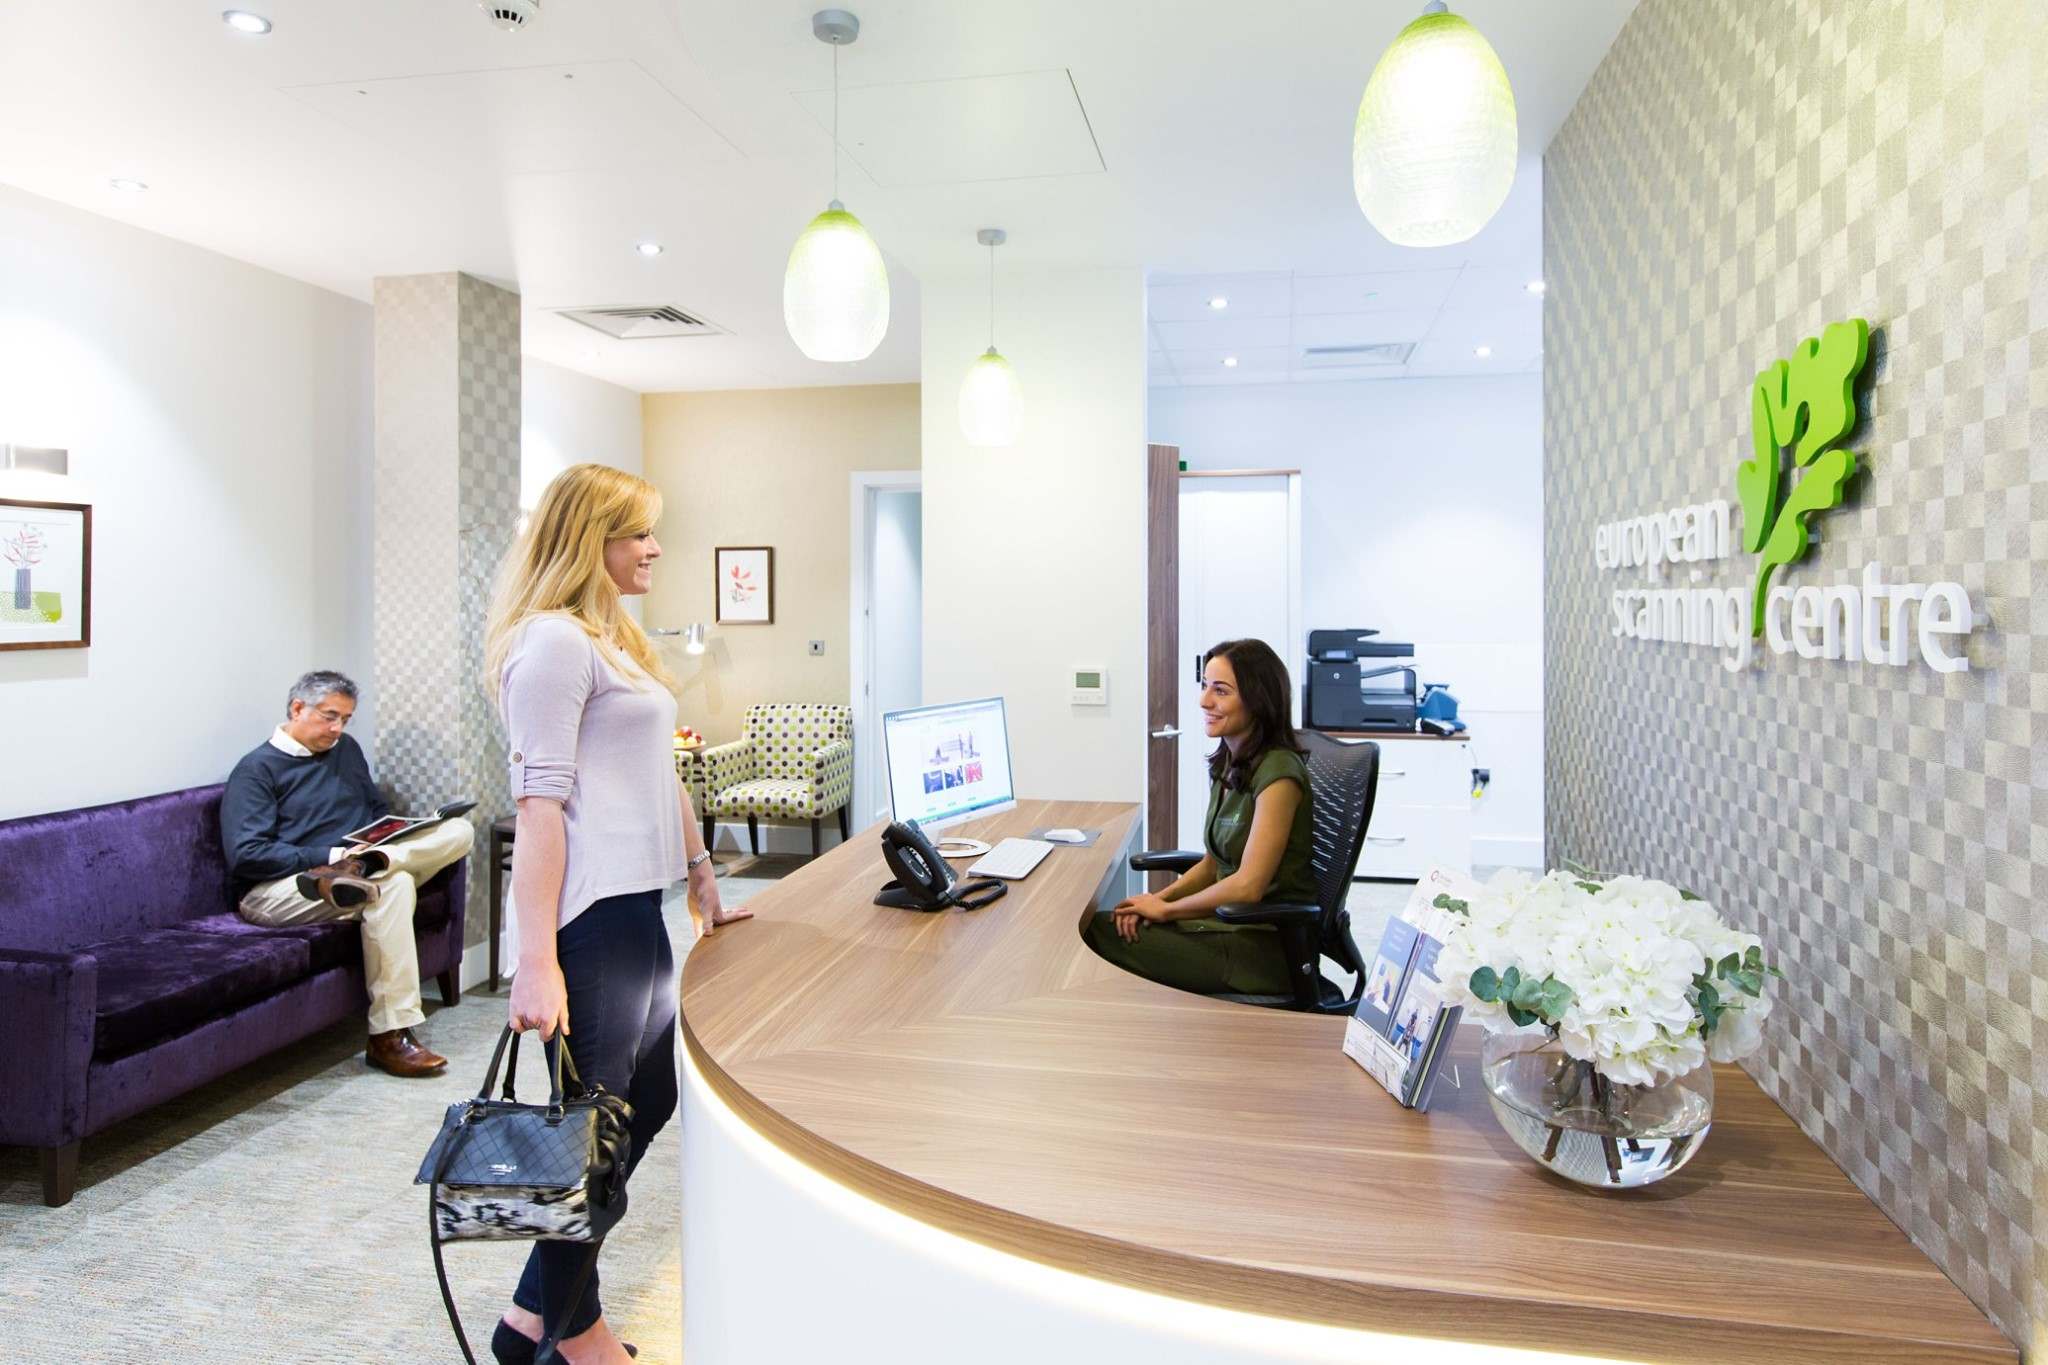 Patient greeted at reception desk by smiling member of staff